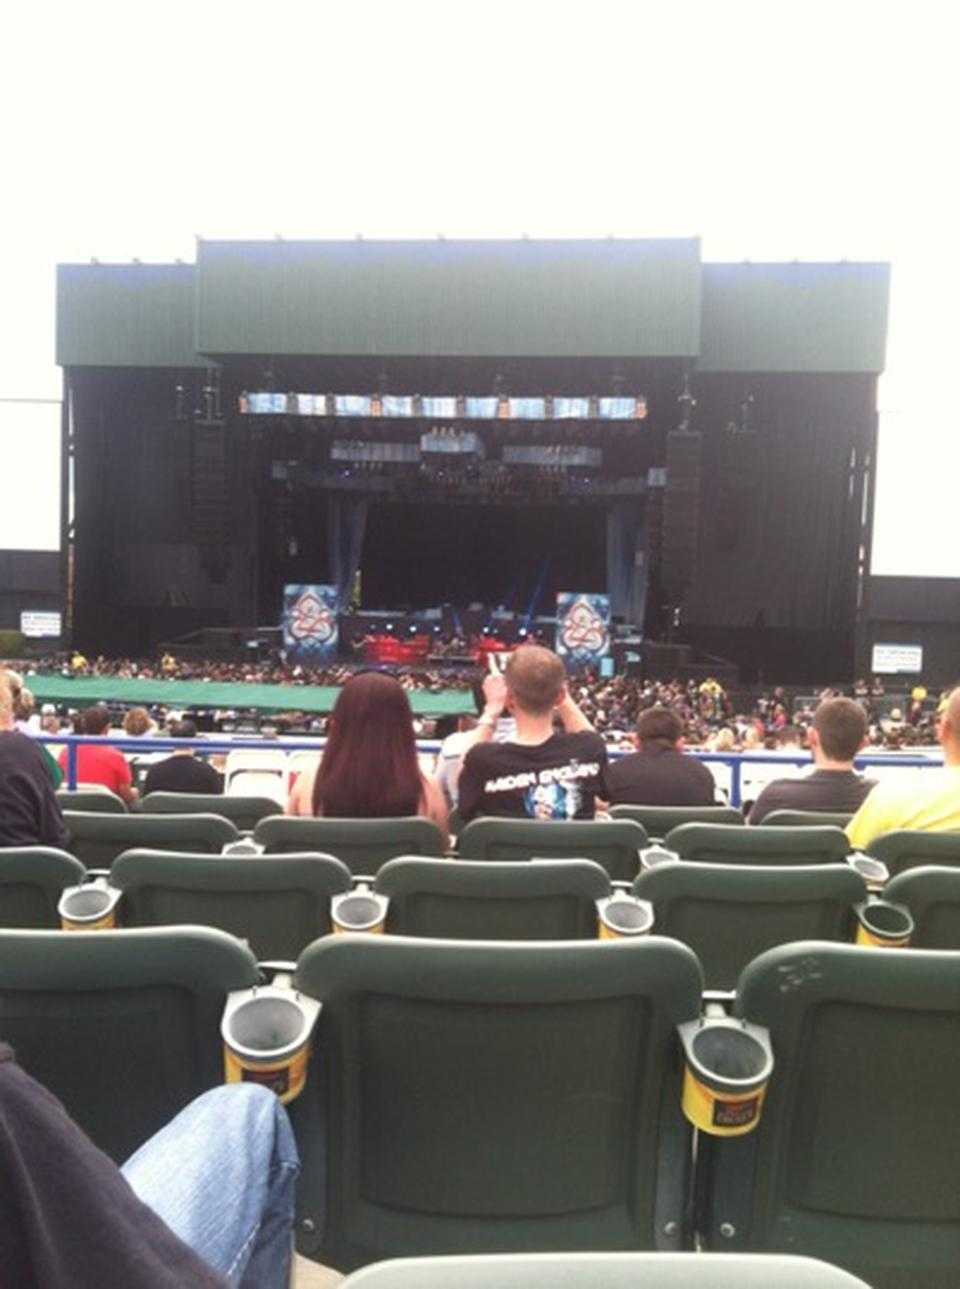 Section 205 seat view